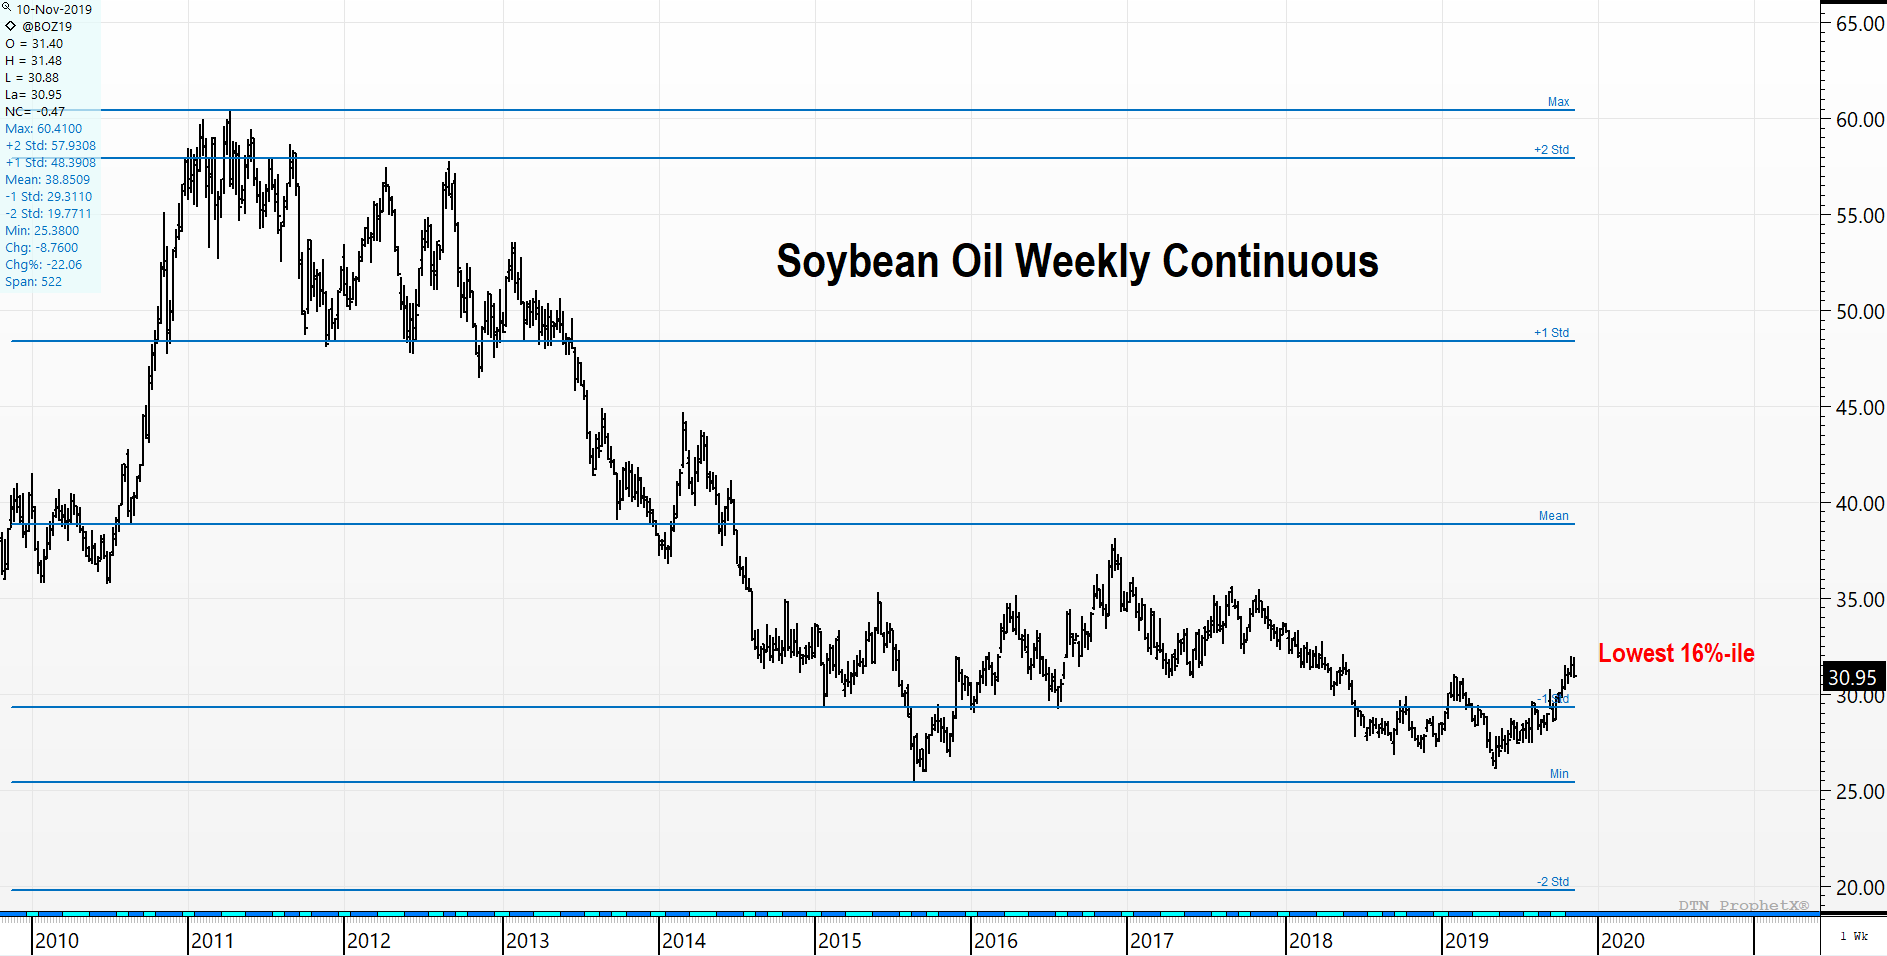 Soybean Oil Weekly Continuous Chart